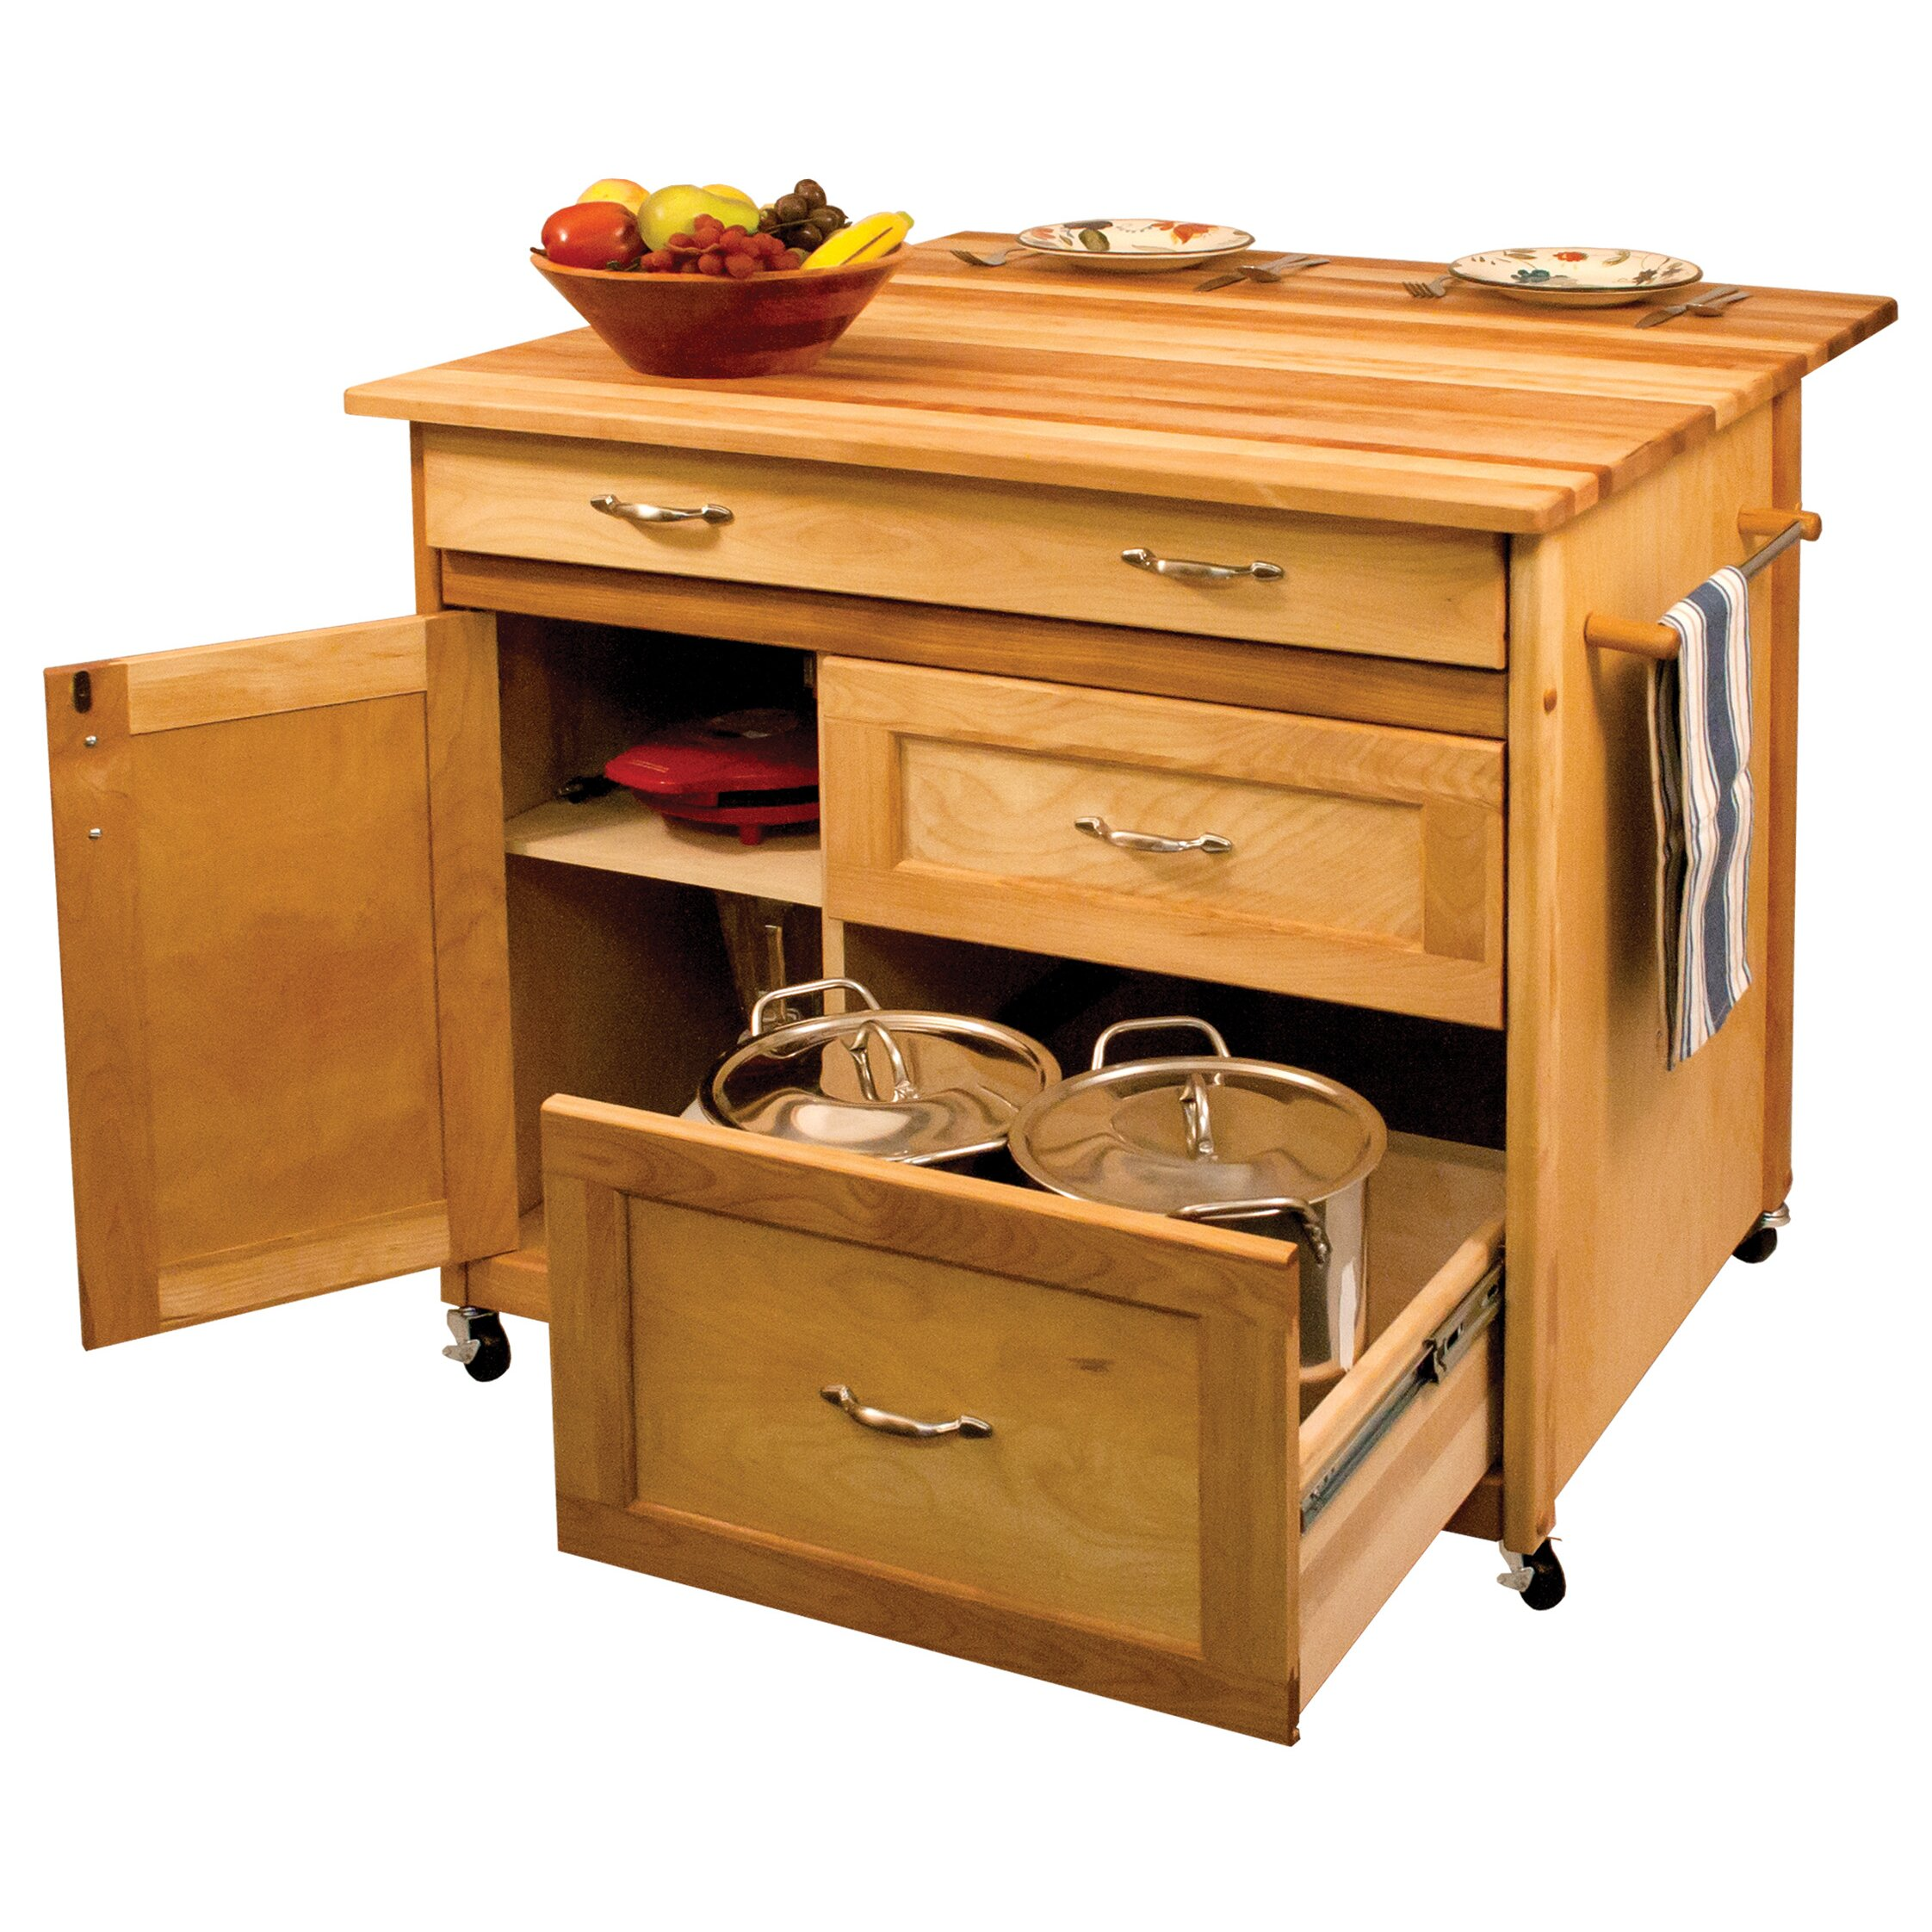 Catskill Craftsmen Kitchen Island With Butcher Block Top : Catskill Craftsmen Kitchen Island with Butcher Block Top & Reviews Wayfair